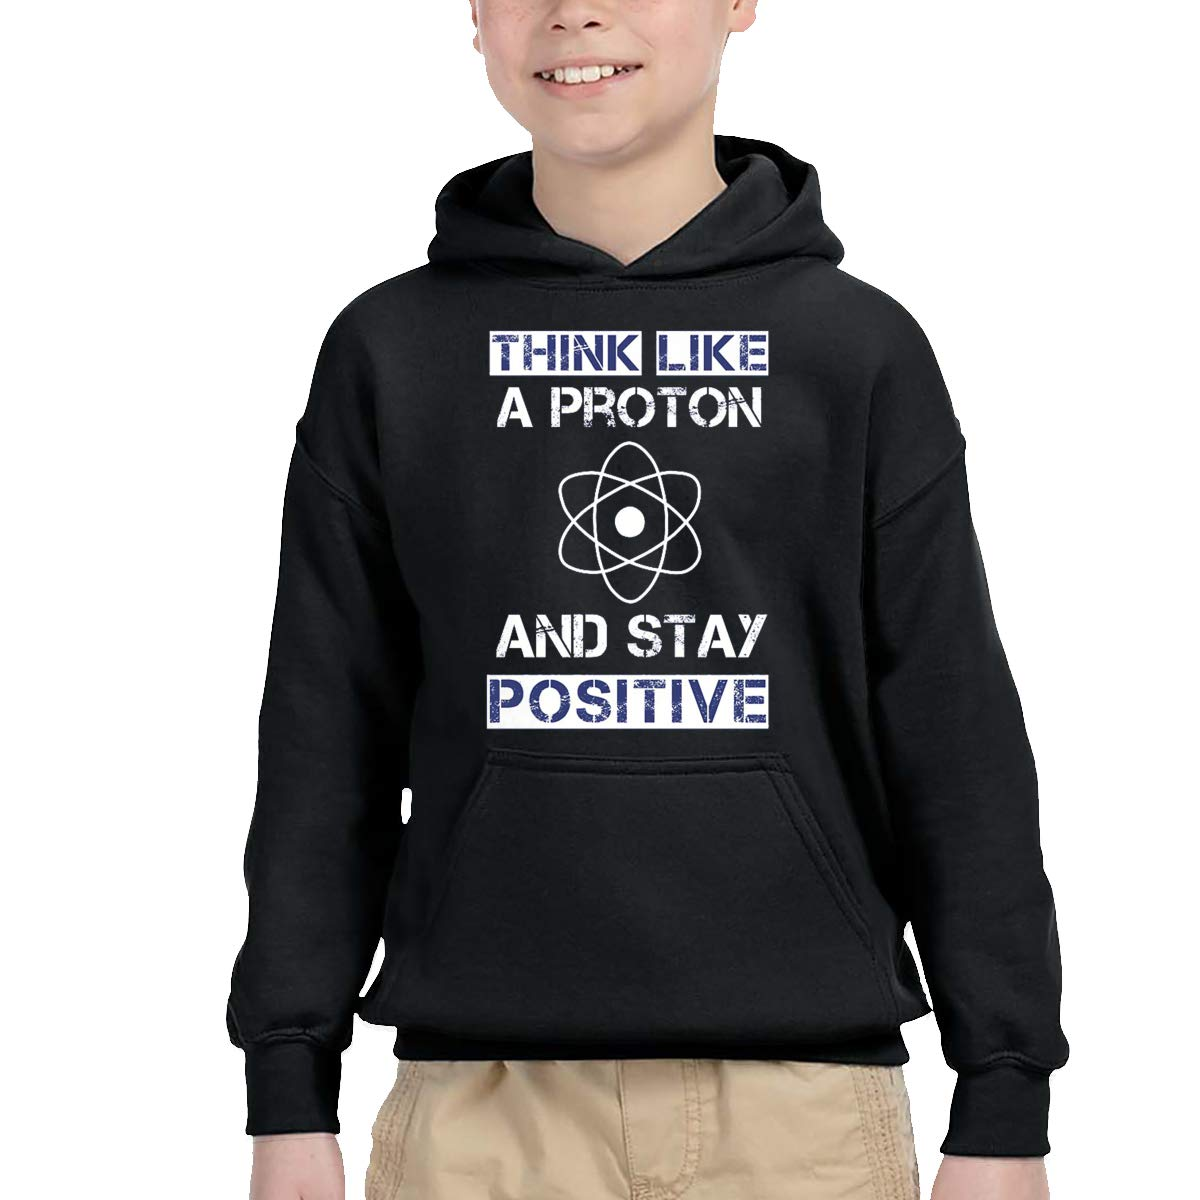 Sakanpo Think Like A Proton and Stay Positive Pullover Hoodie Sweatshirt Teens Hooded for Boys Girls